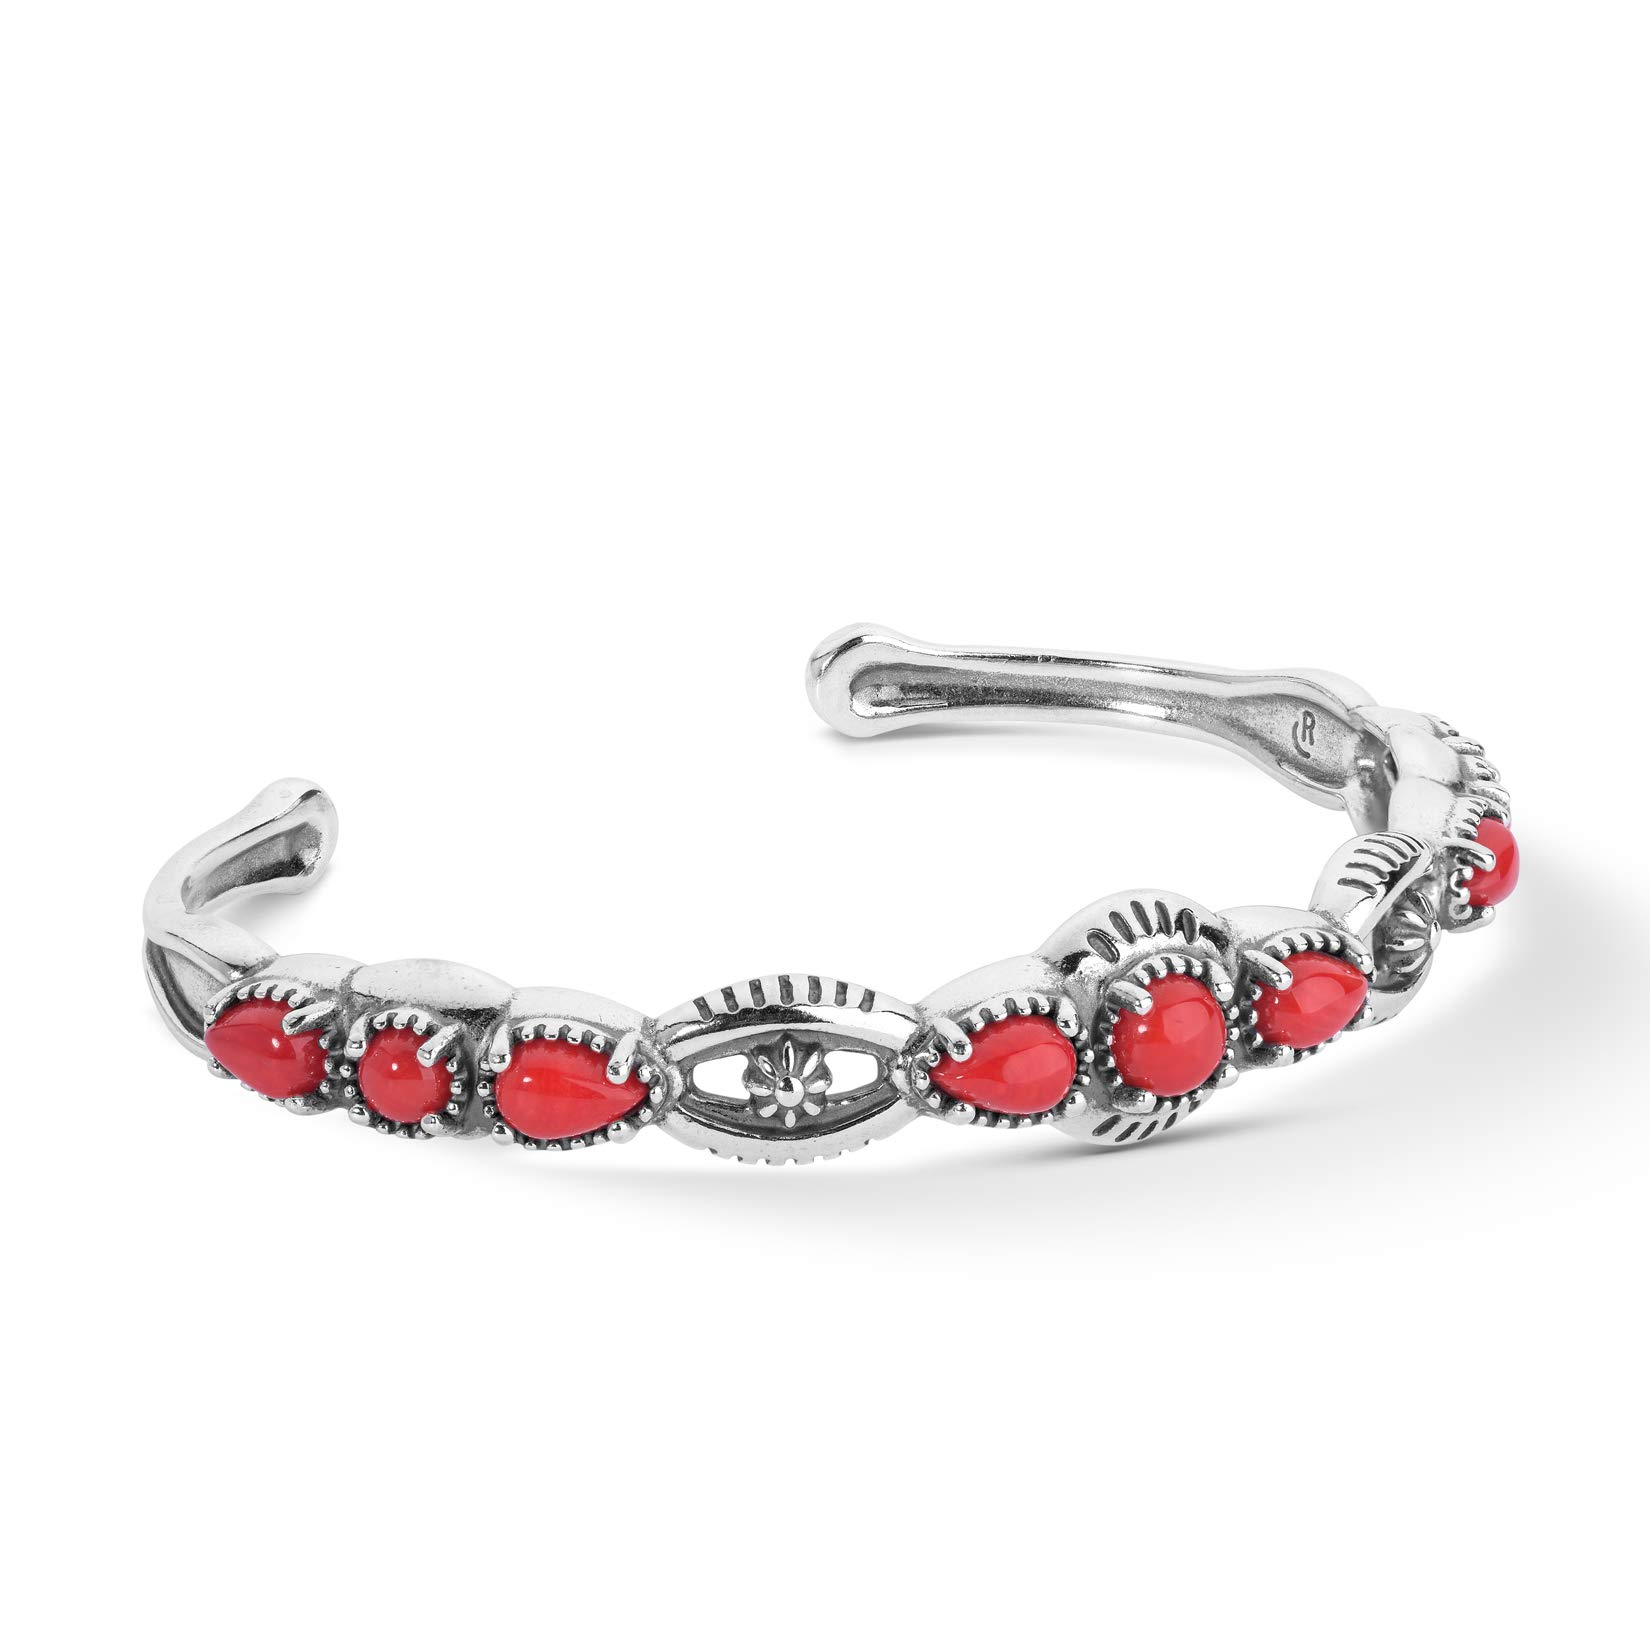 American West Sterling Silver Multi Gemstone Choice of 4 Different Colors Slim Cuff Bracelet Sizes S, M or L